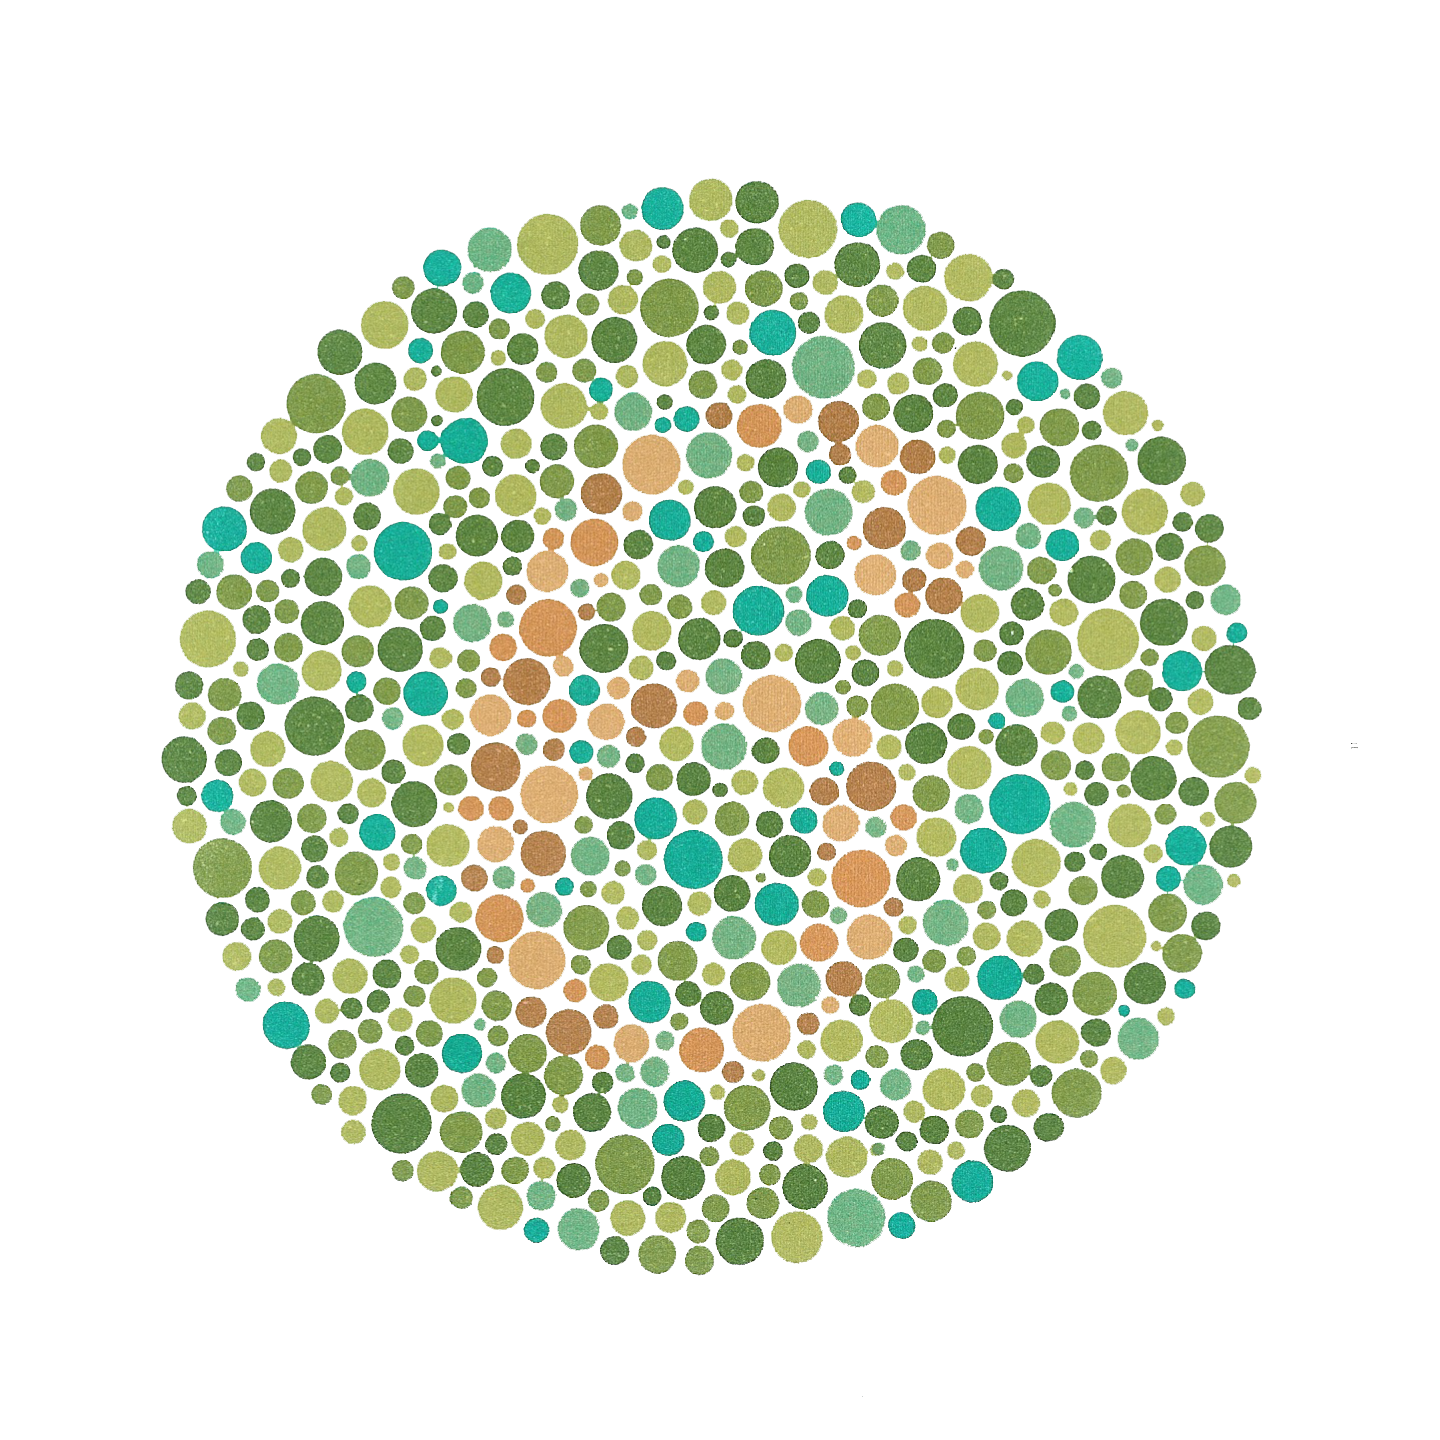 Students interview me about my color-blindness | The Science Slug